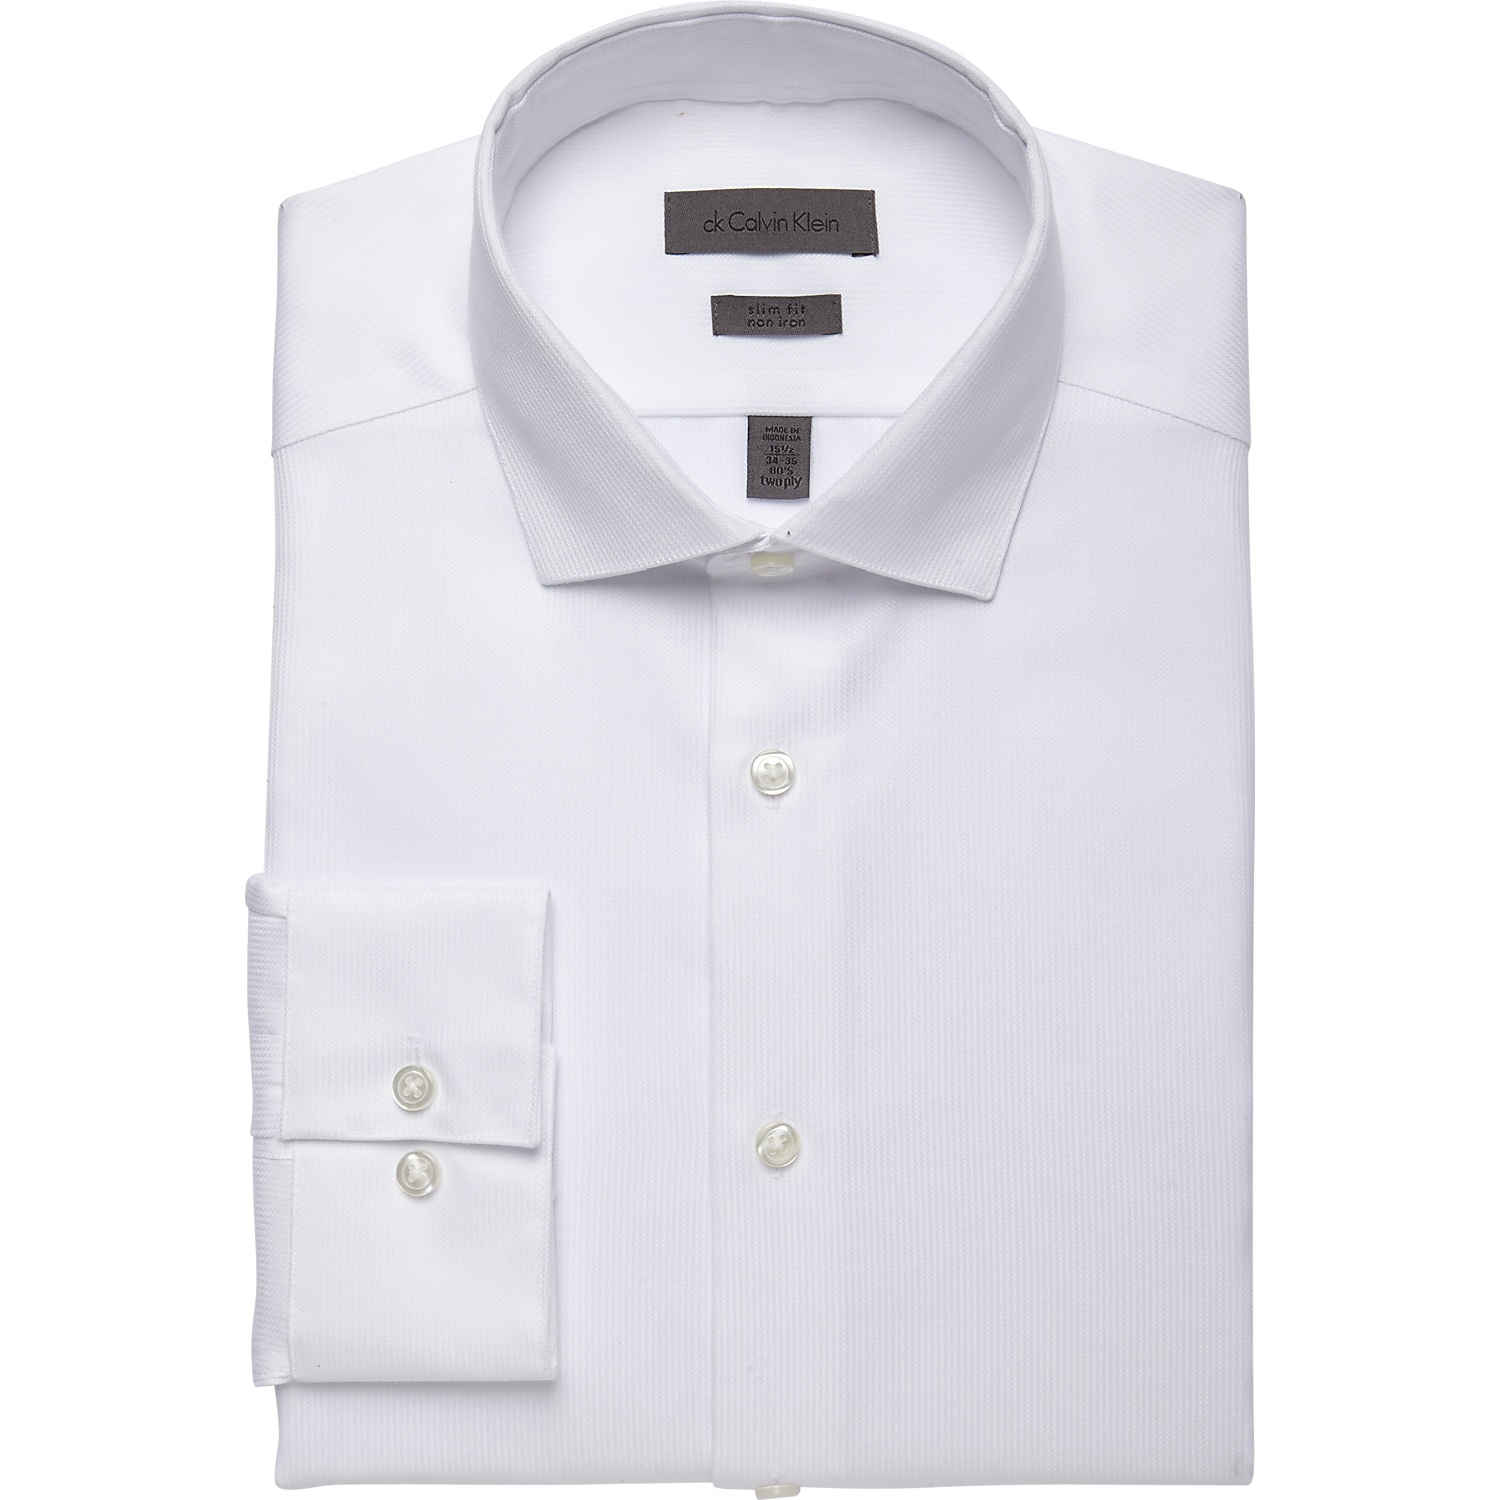 Nice white dress shirt south park t shirts for Dress shirt no pocket